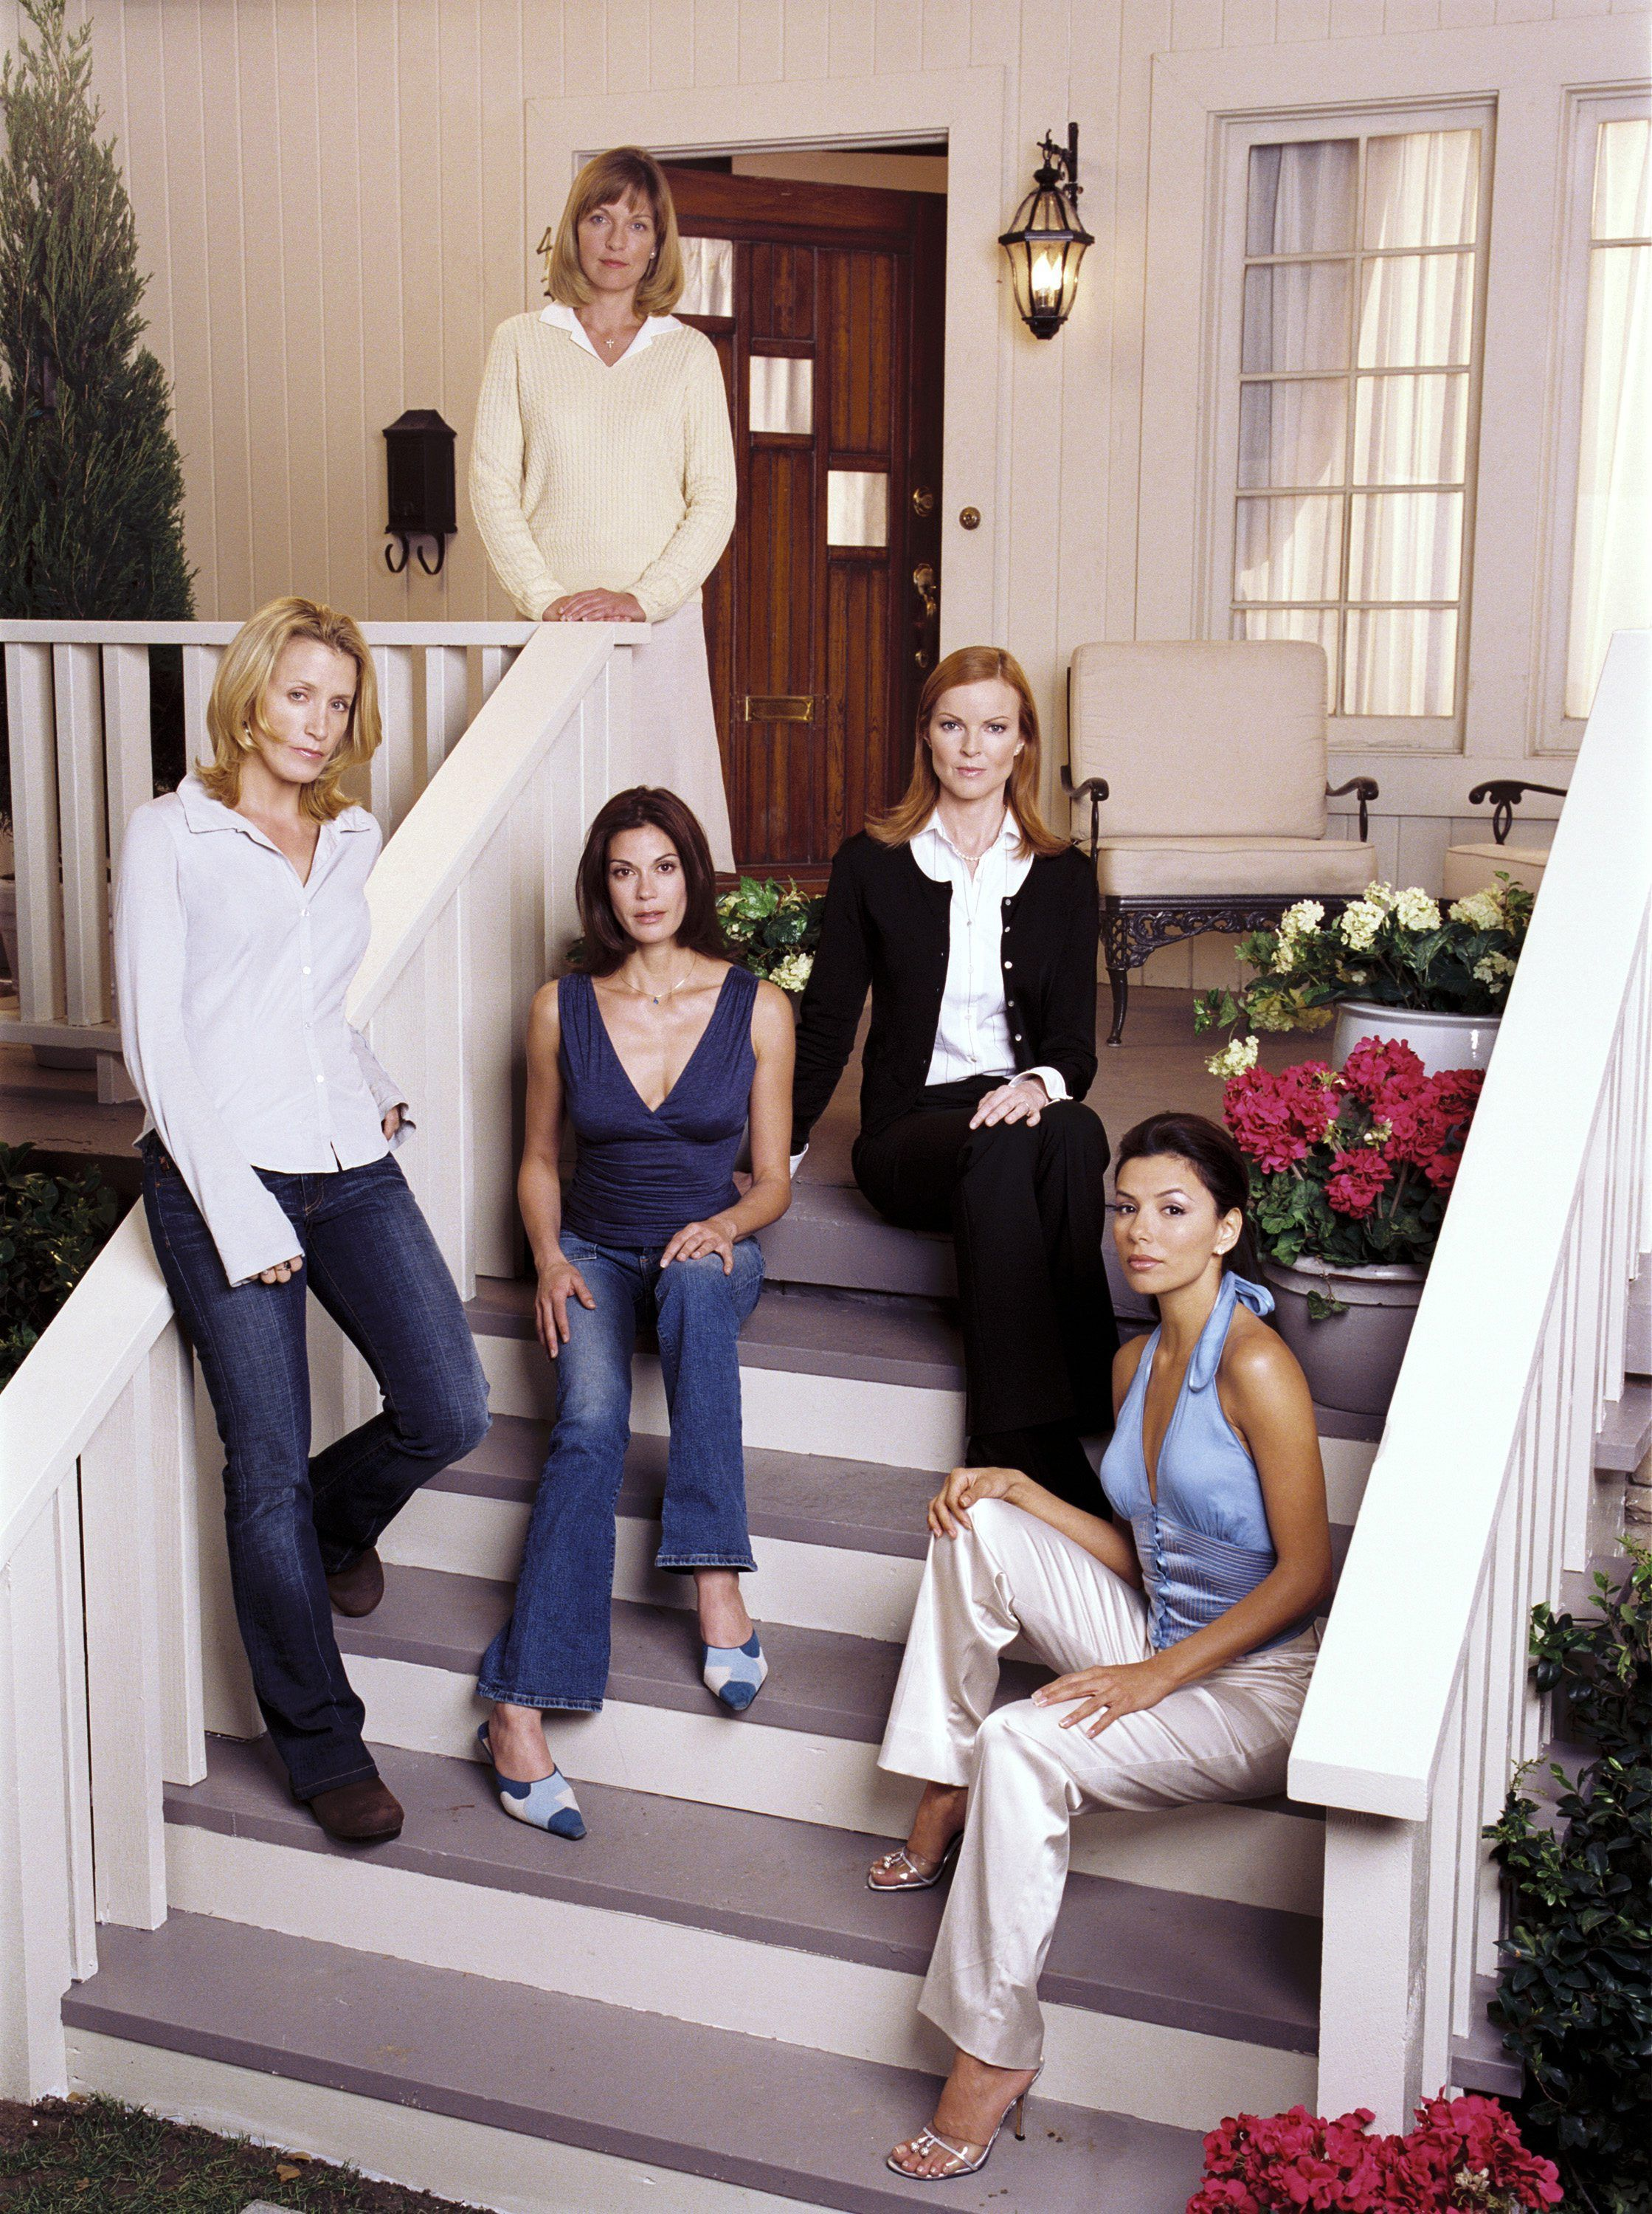 Cast Of Desperate Housewives: How Much Are They Worth Now?